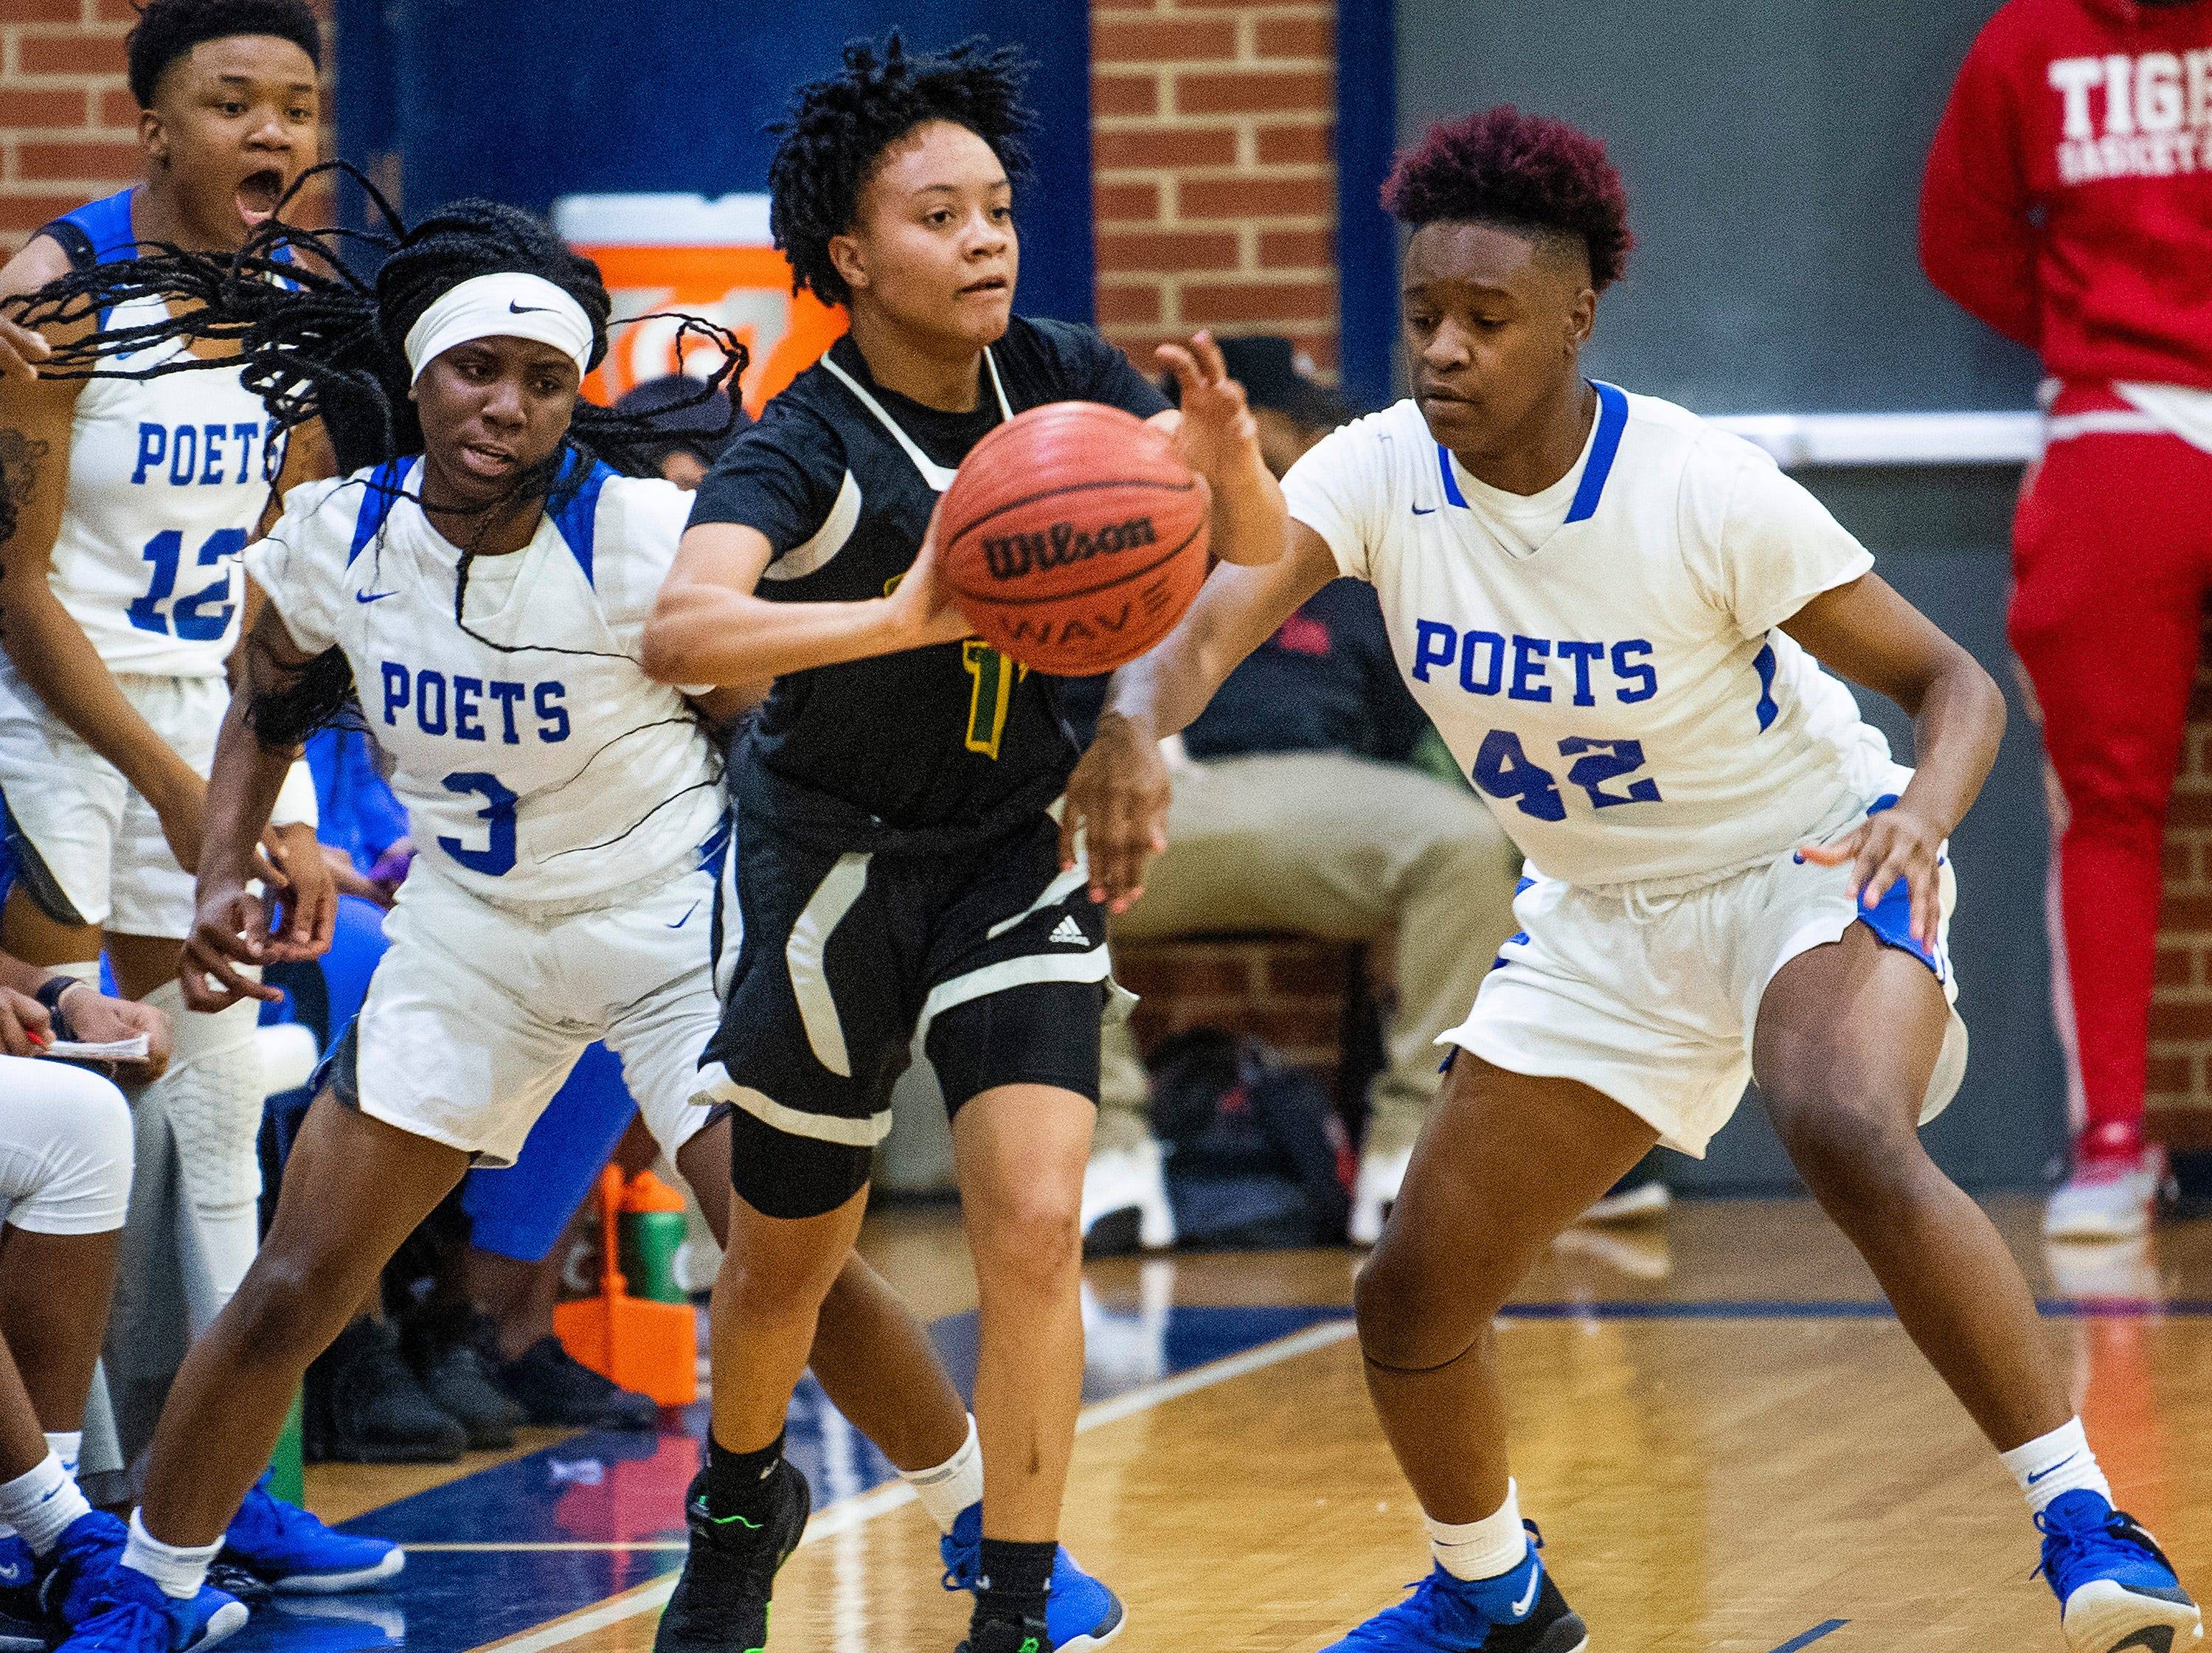 Carver's Aaliyah Ellis (11) is double teamed by Lanier's Tamia Blair (3)  and Lanier's Nyana Reese (42) at the Lanier campus in Montgomery, Ala., on Friday January 11, 2019.